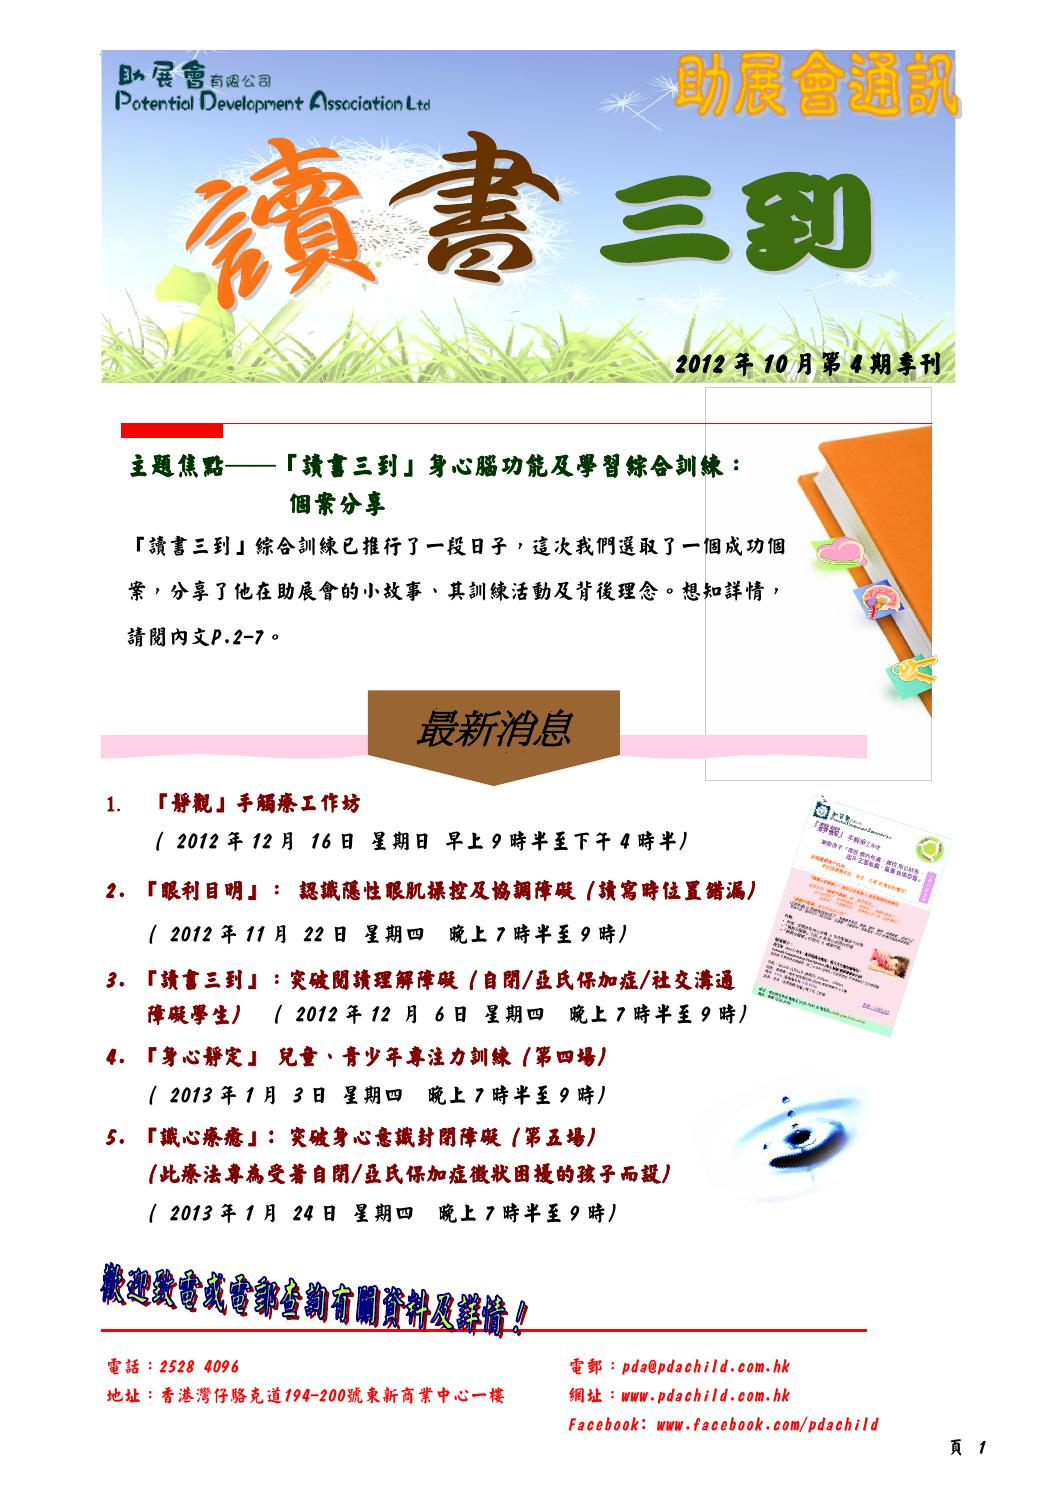 Pda newsletter oct 2012 by 助展會 Potential Development Association - Issuu